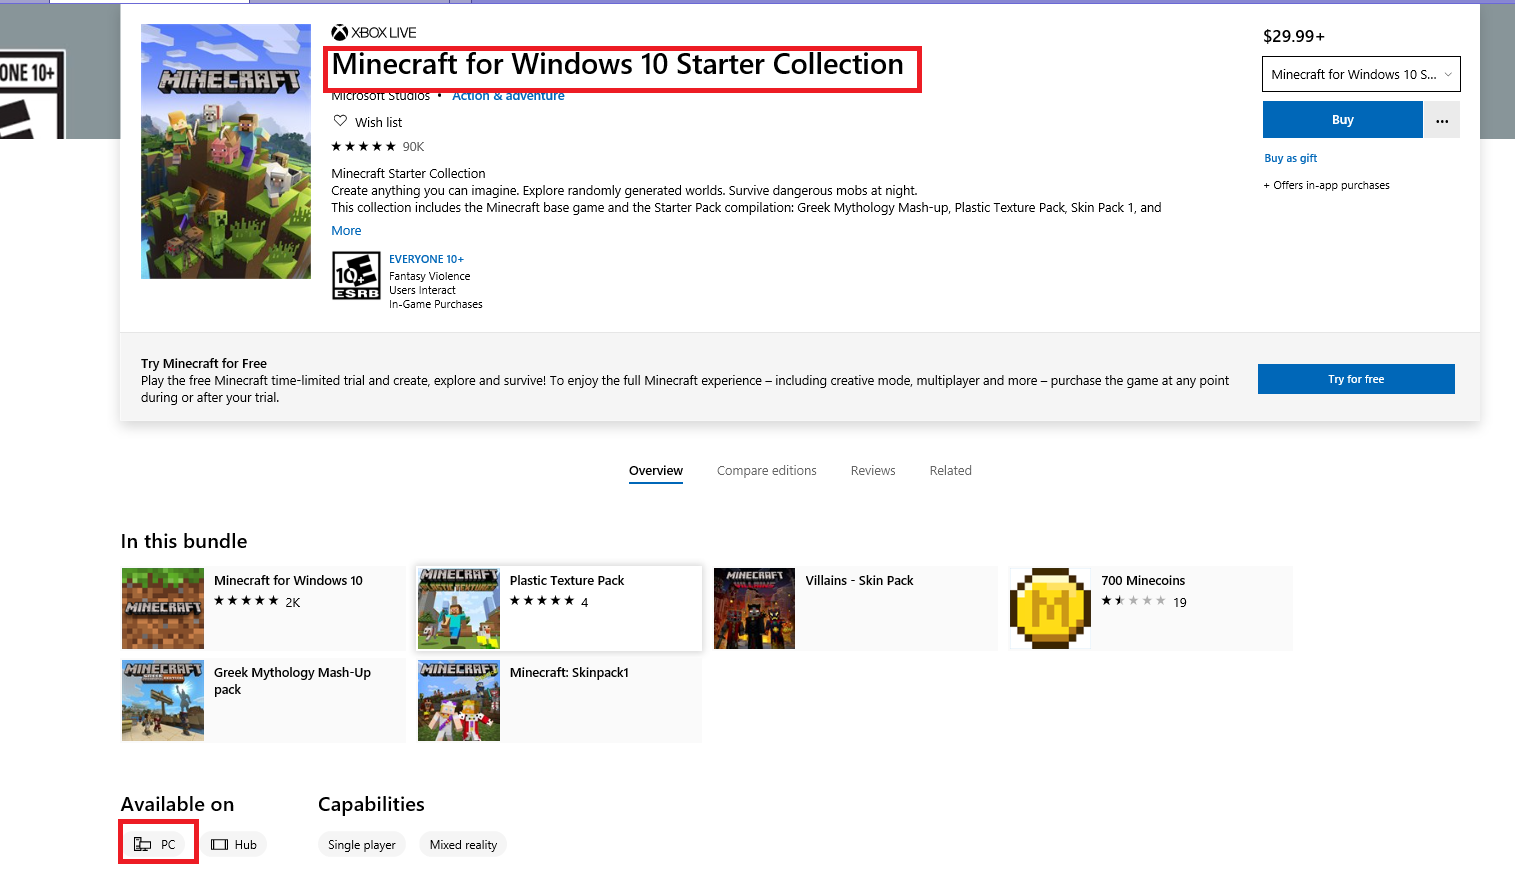 Unable to install Minecraft for Windows 10 Starter Collection 3786f464-ee7e-4458-88e7-56128929293b?upload=true.png